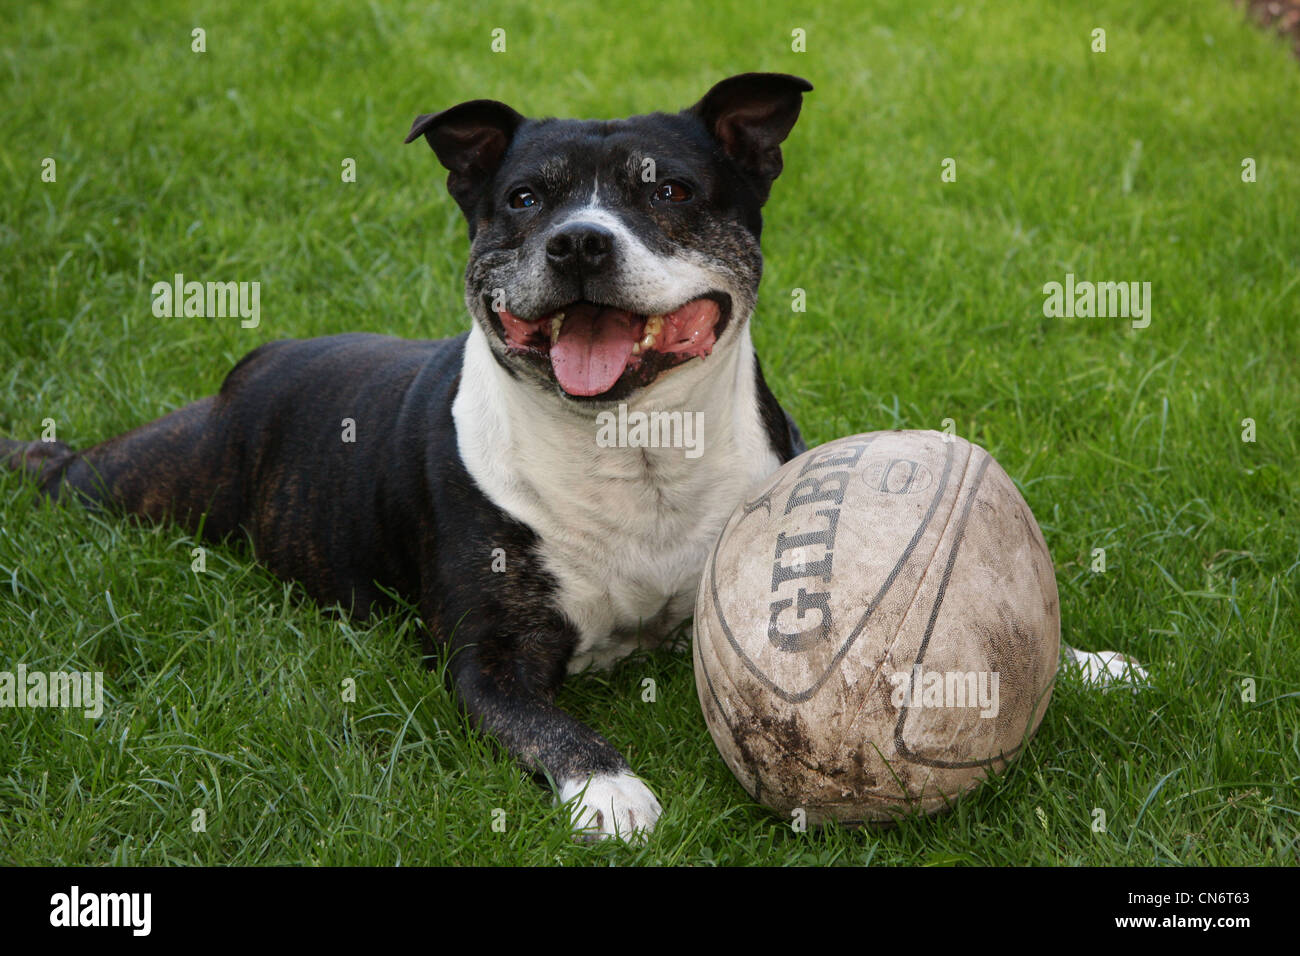 Staffordshire bull terrier at play with football - Stock Image